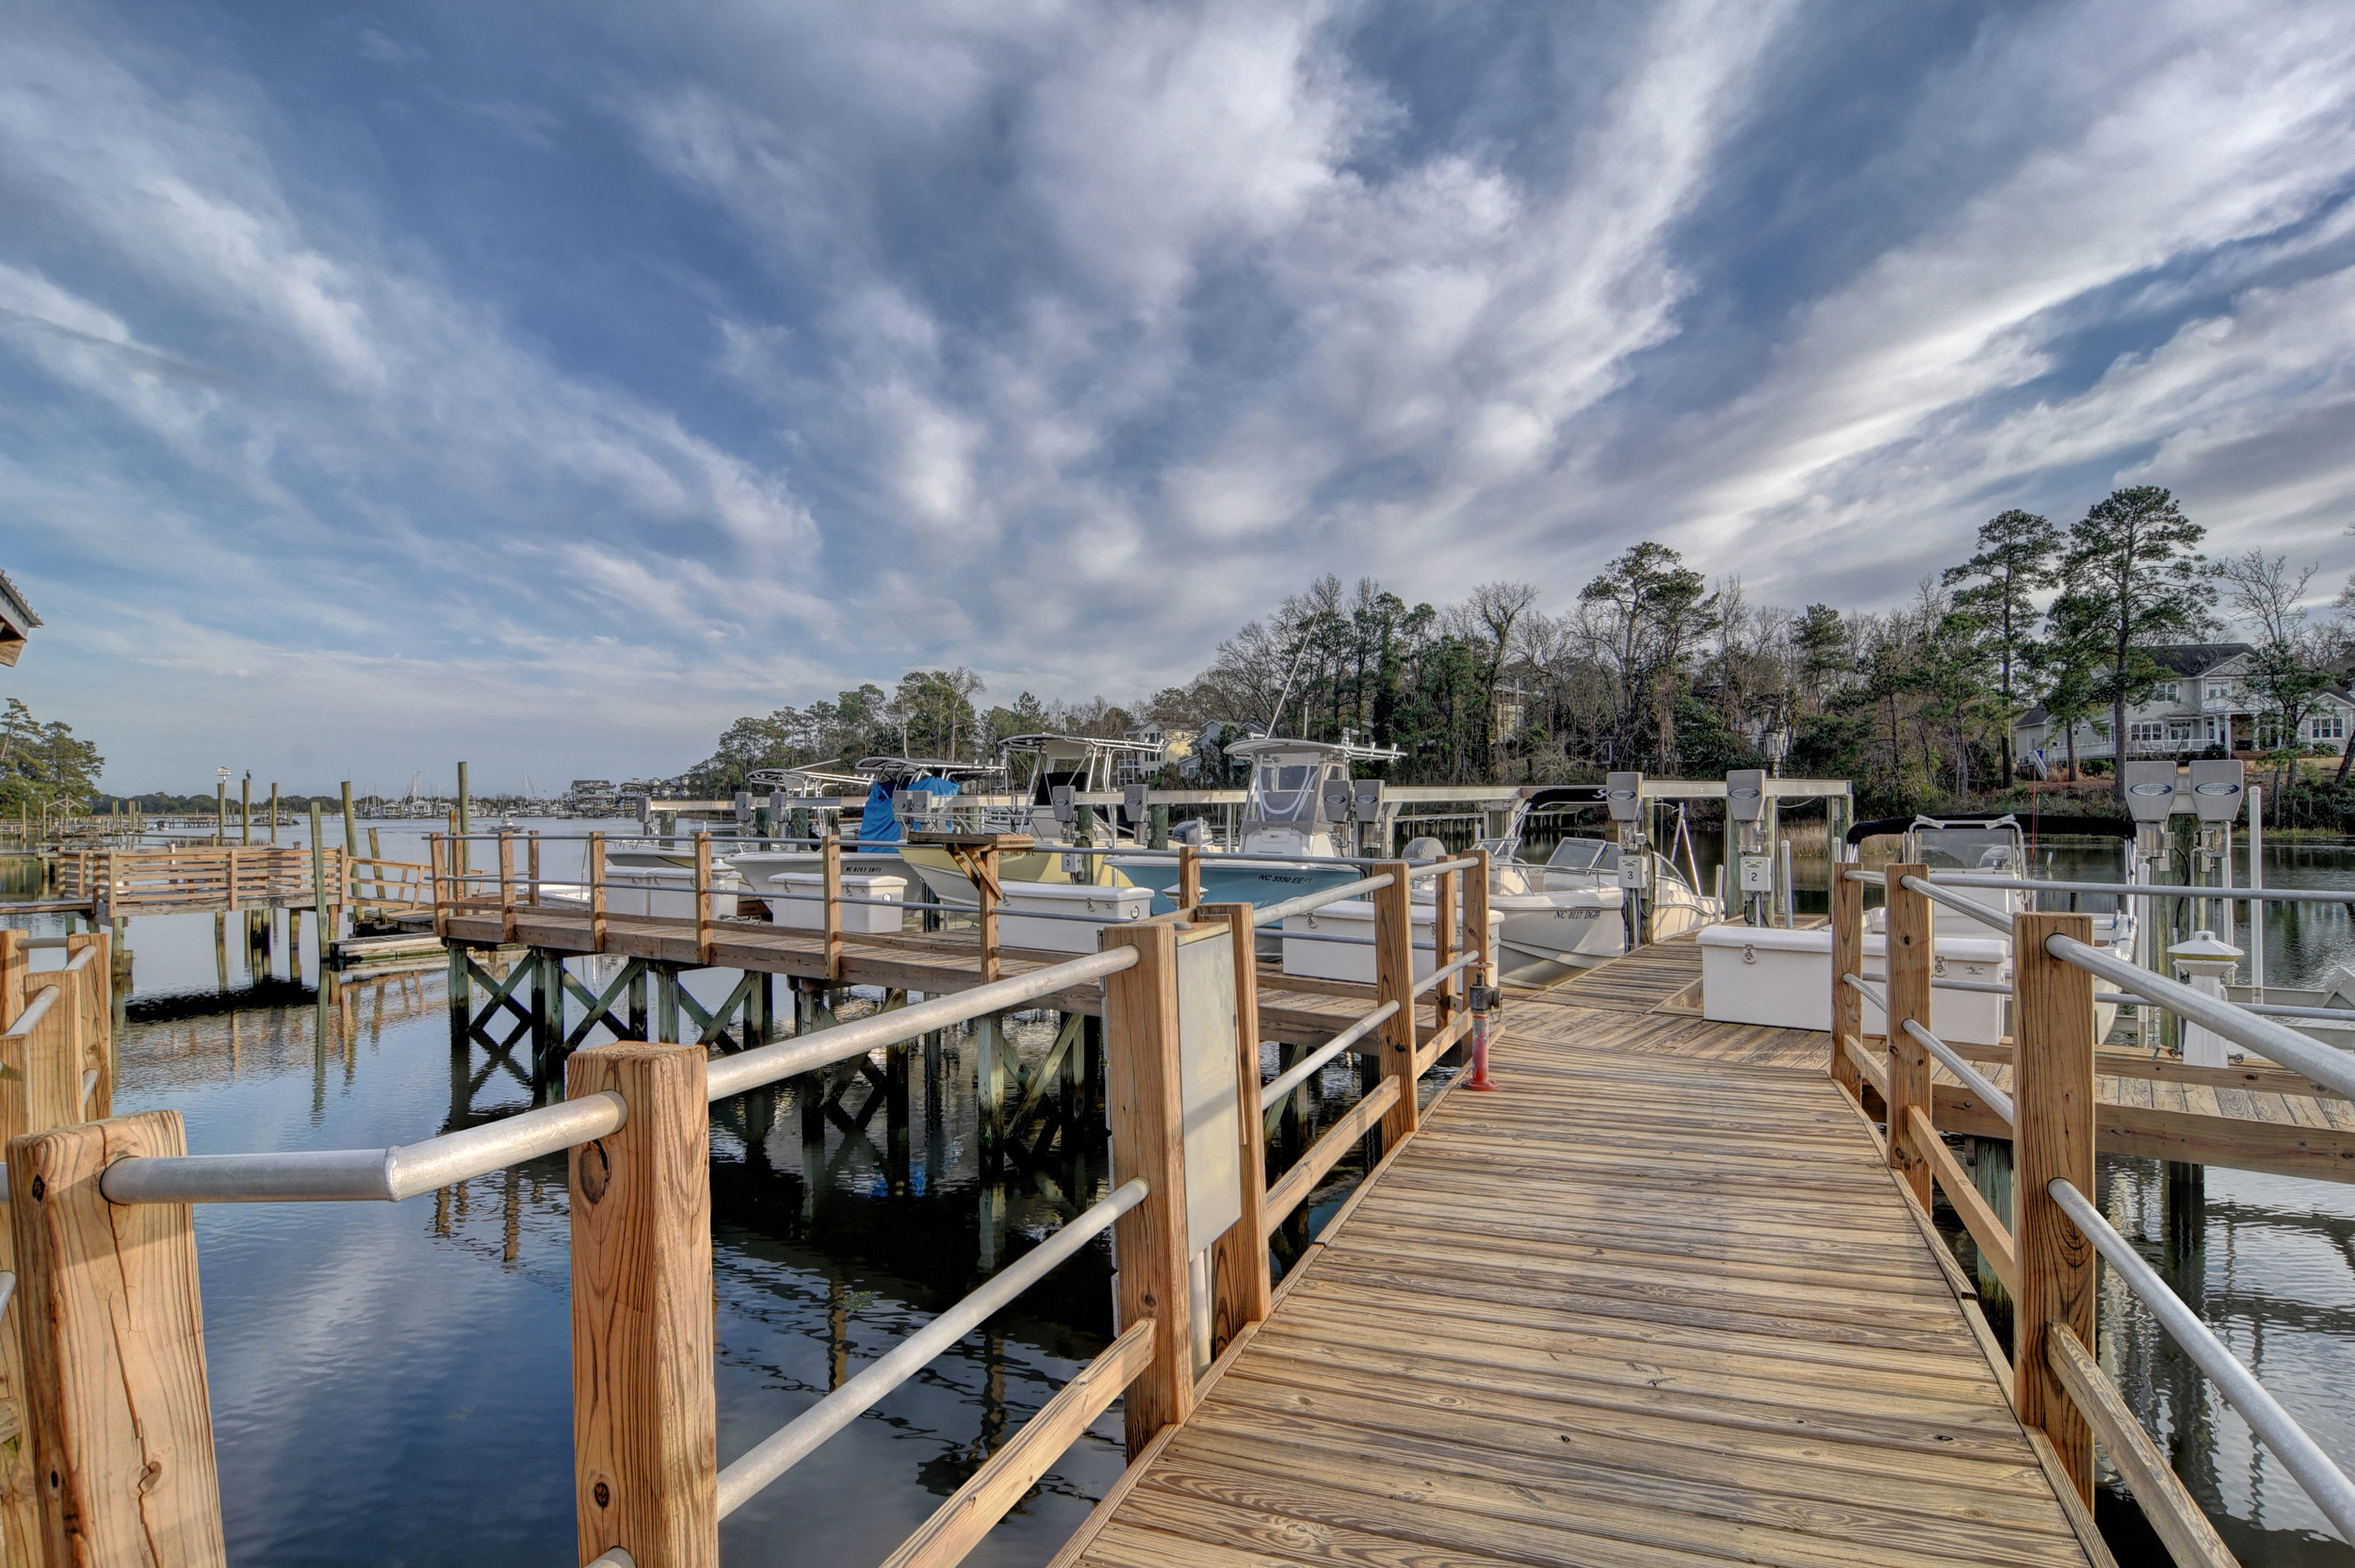 4158 Donnelly Ln Wilmington NC-print-079-69-DSC 5723 4 5-4200x2798-300dpi.jpg